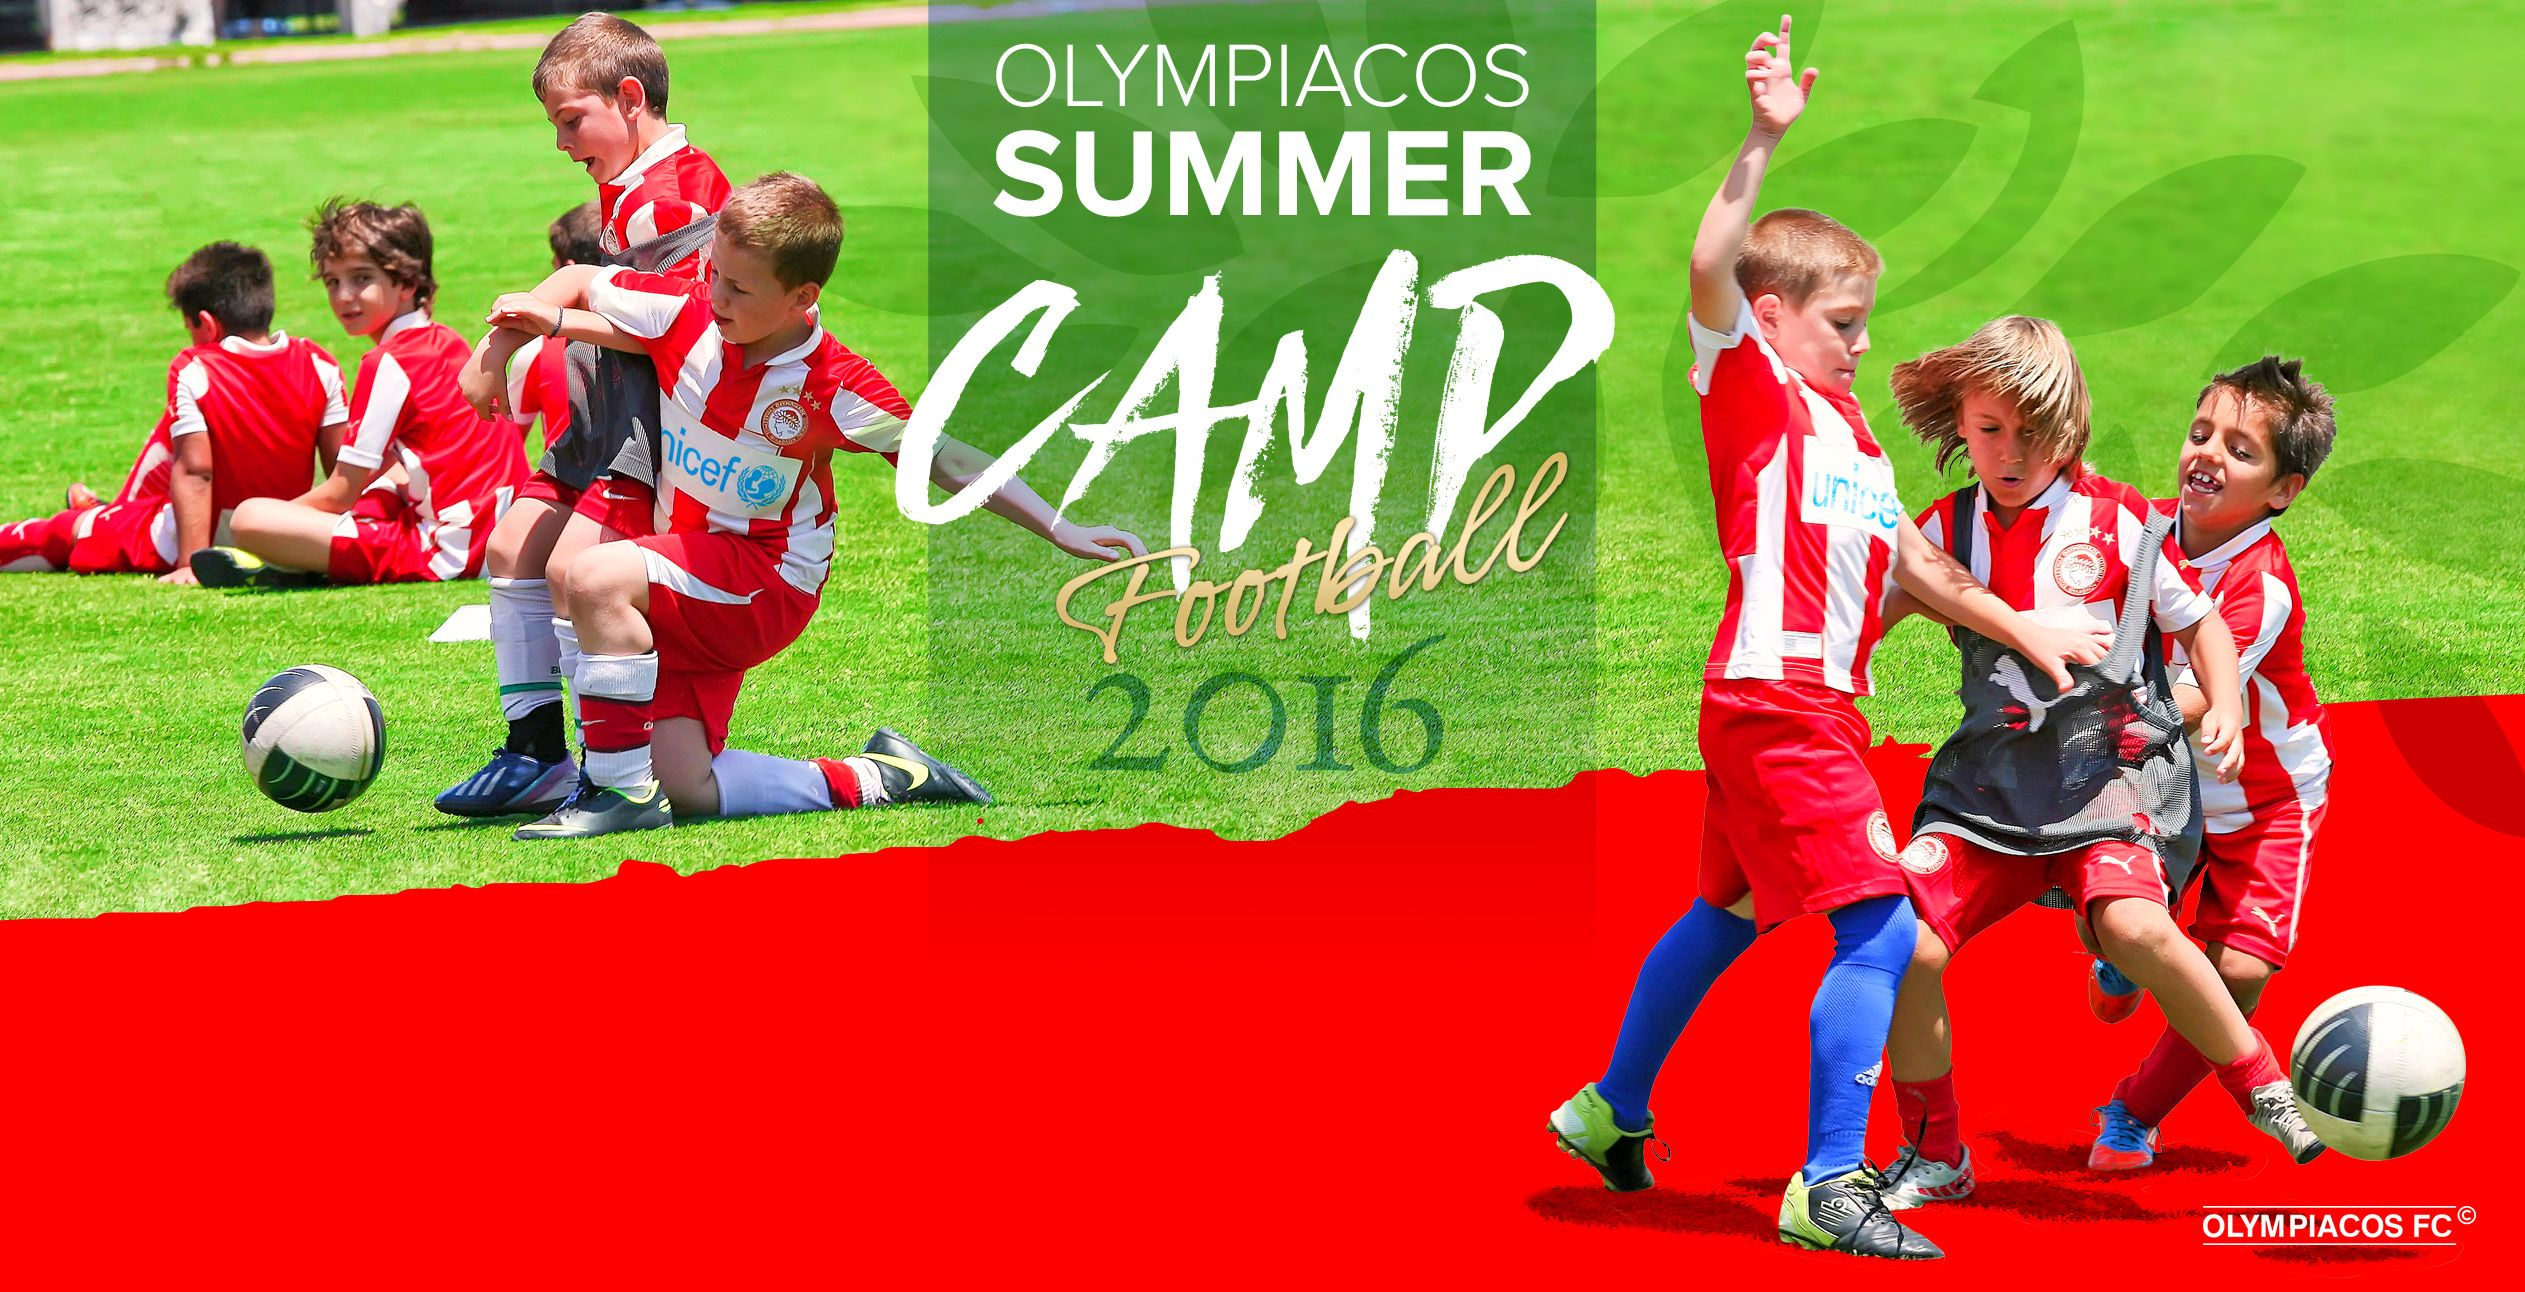 Time for the Olympiacos Summer Camp!